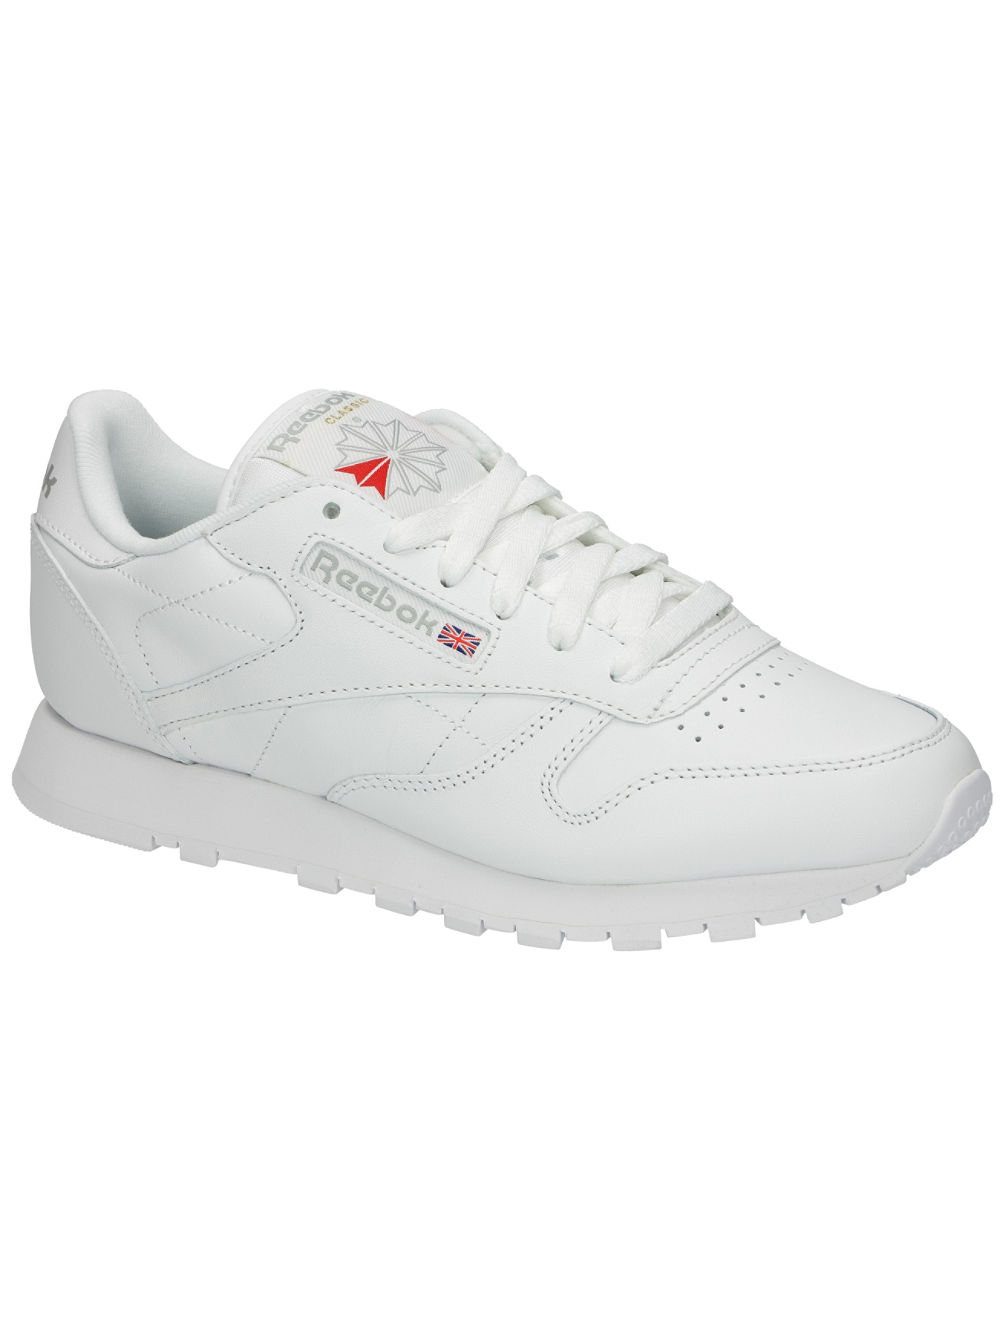 038e498fbfe Buy Reebok Classic Leather Sneakers online at blue-tomato.com